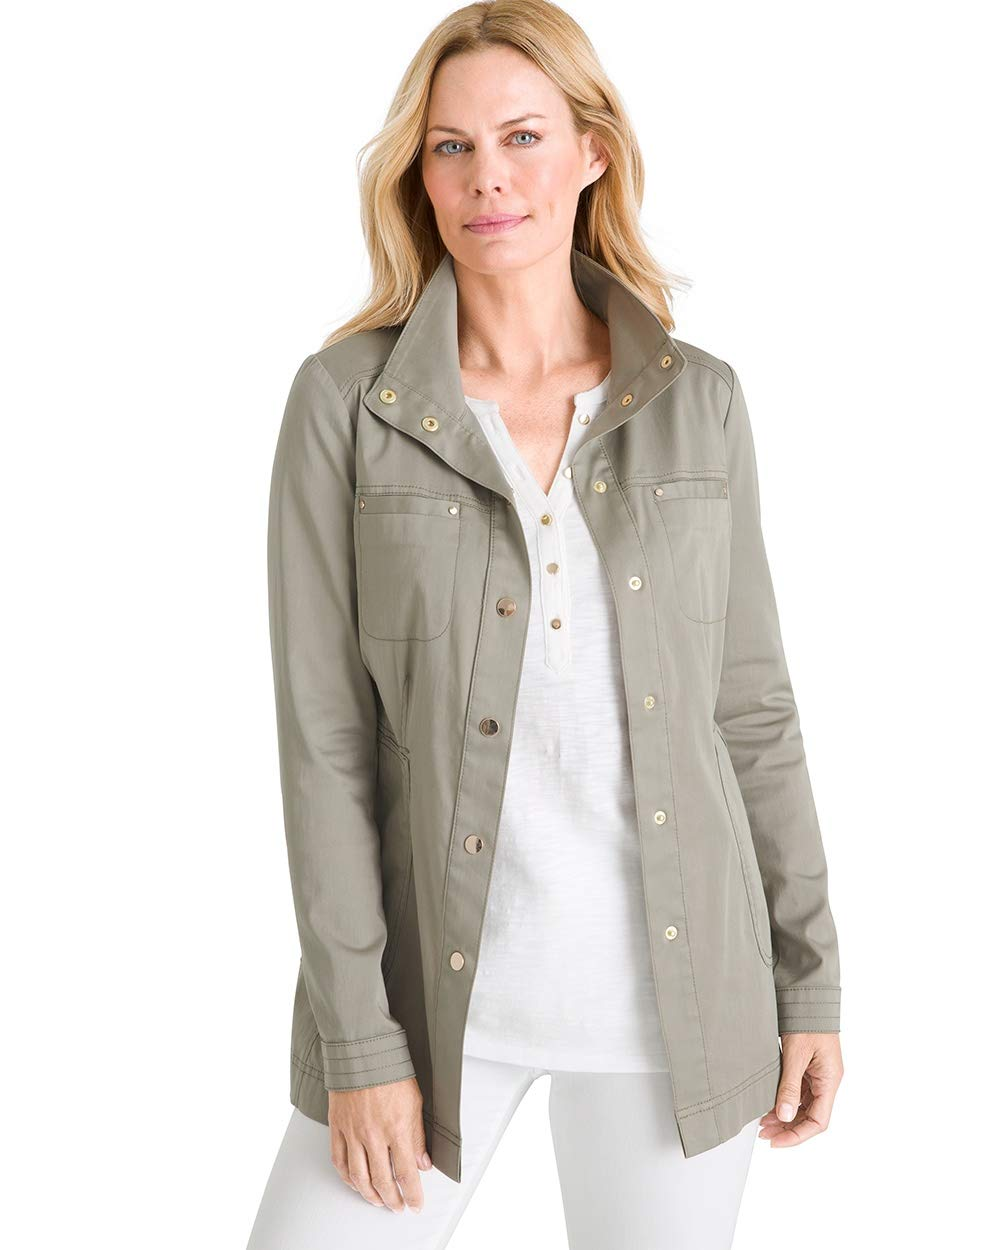 Chico's Women's Luxe Twill Utility Jacket Size 16/18 XL (3) Green